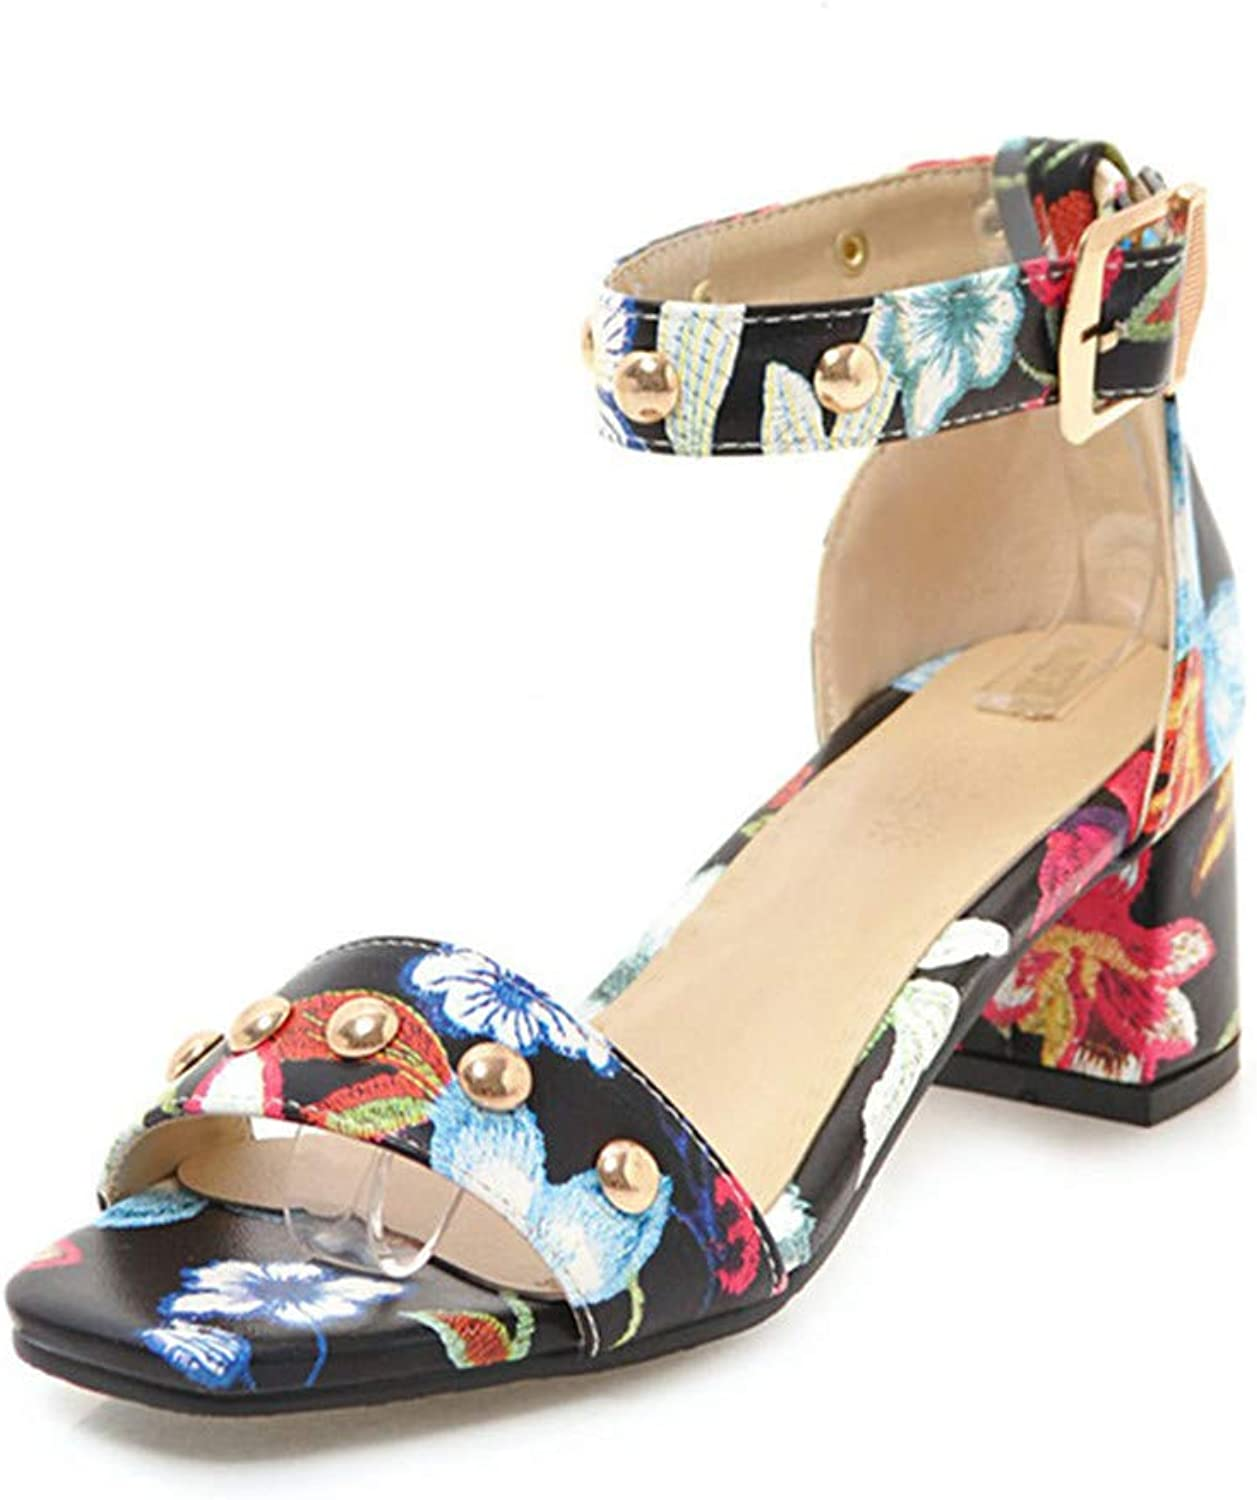 XuanHan Flowers Printing Concise Ankle-Strap Women Sandals shoes Fashion Party Sandal Women